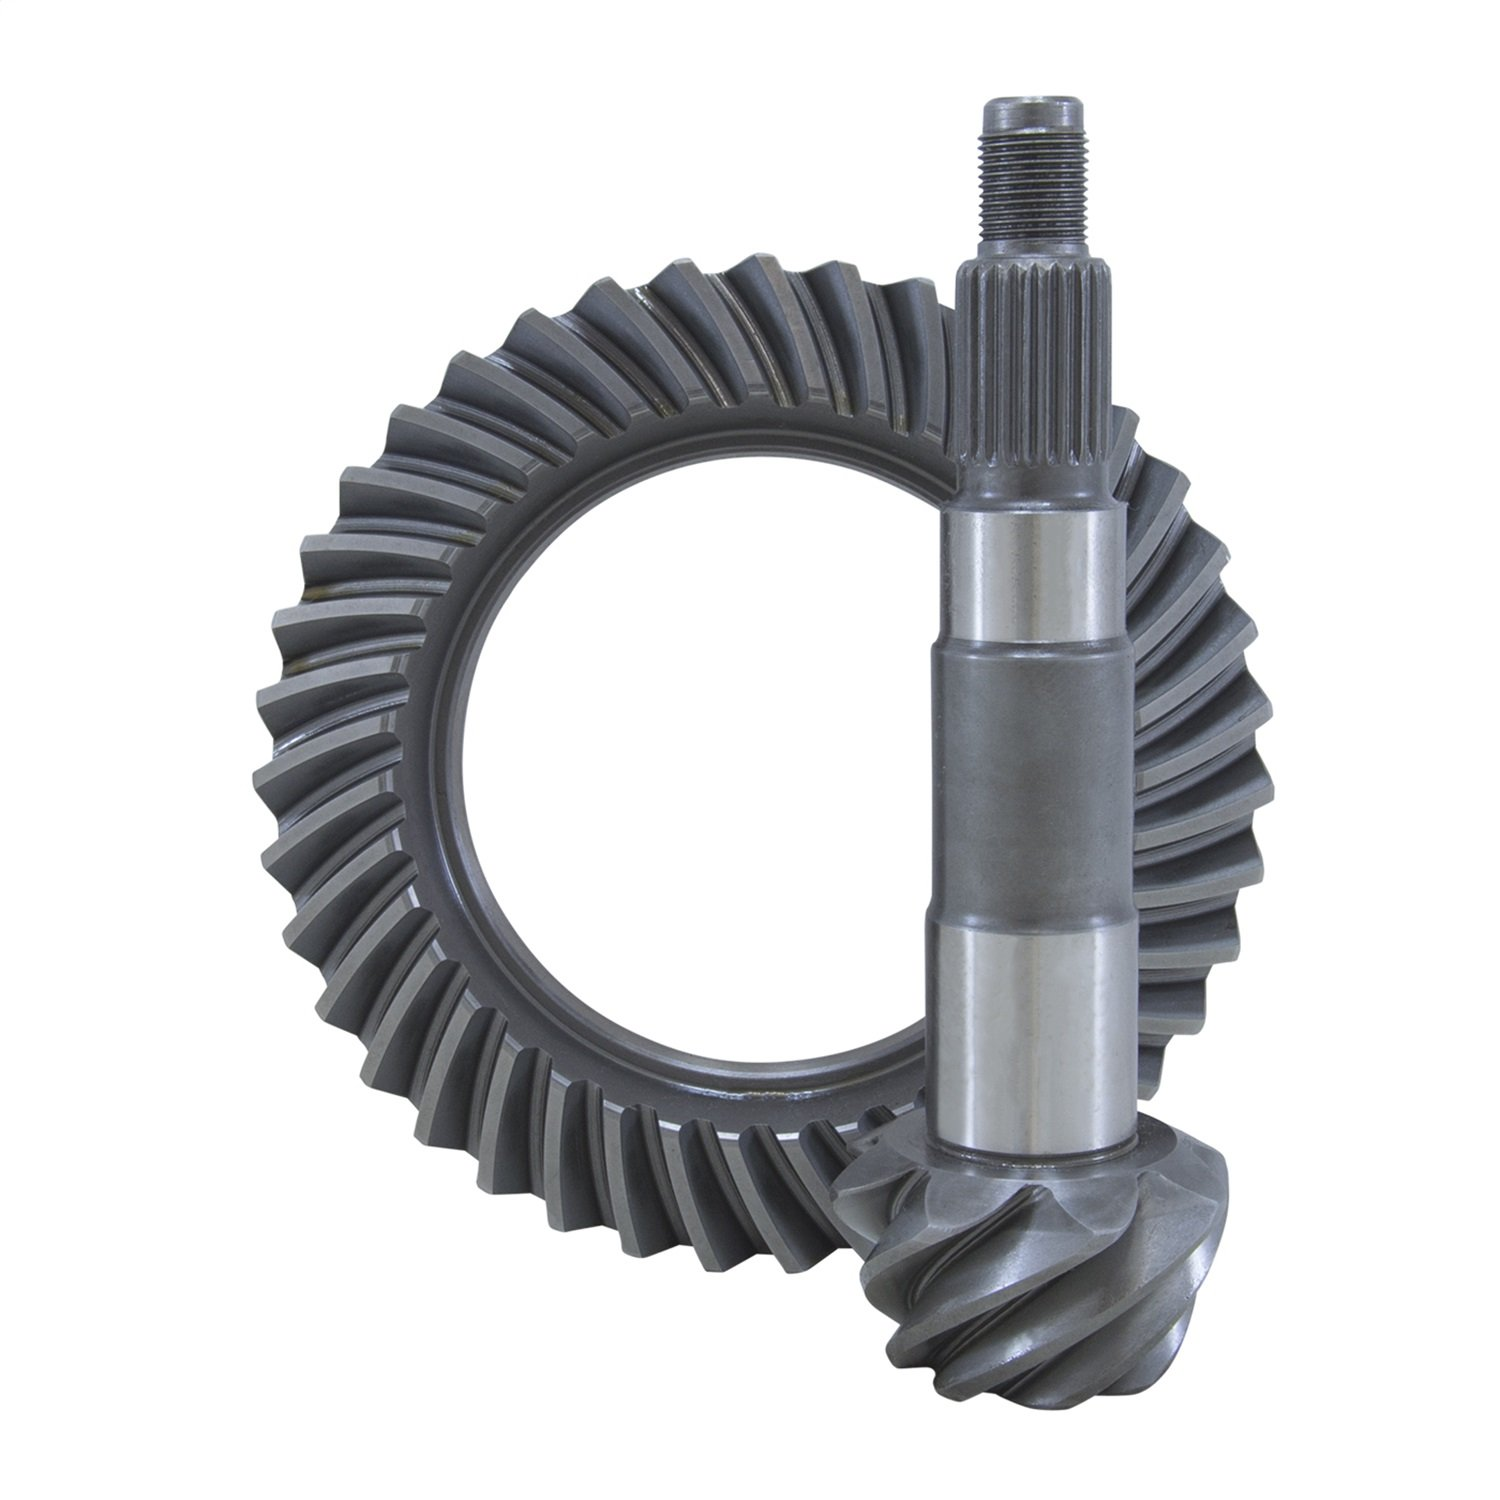 Yukon Gear & Axle (YG T7.5R-456R) High Performance Ring & Pinion Gear Set for Toyota Tacoma/T100 7.5 IFS Reverse Rotation Differential